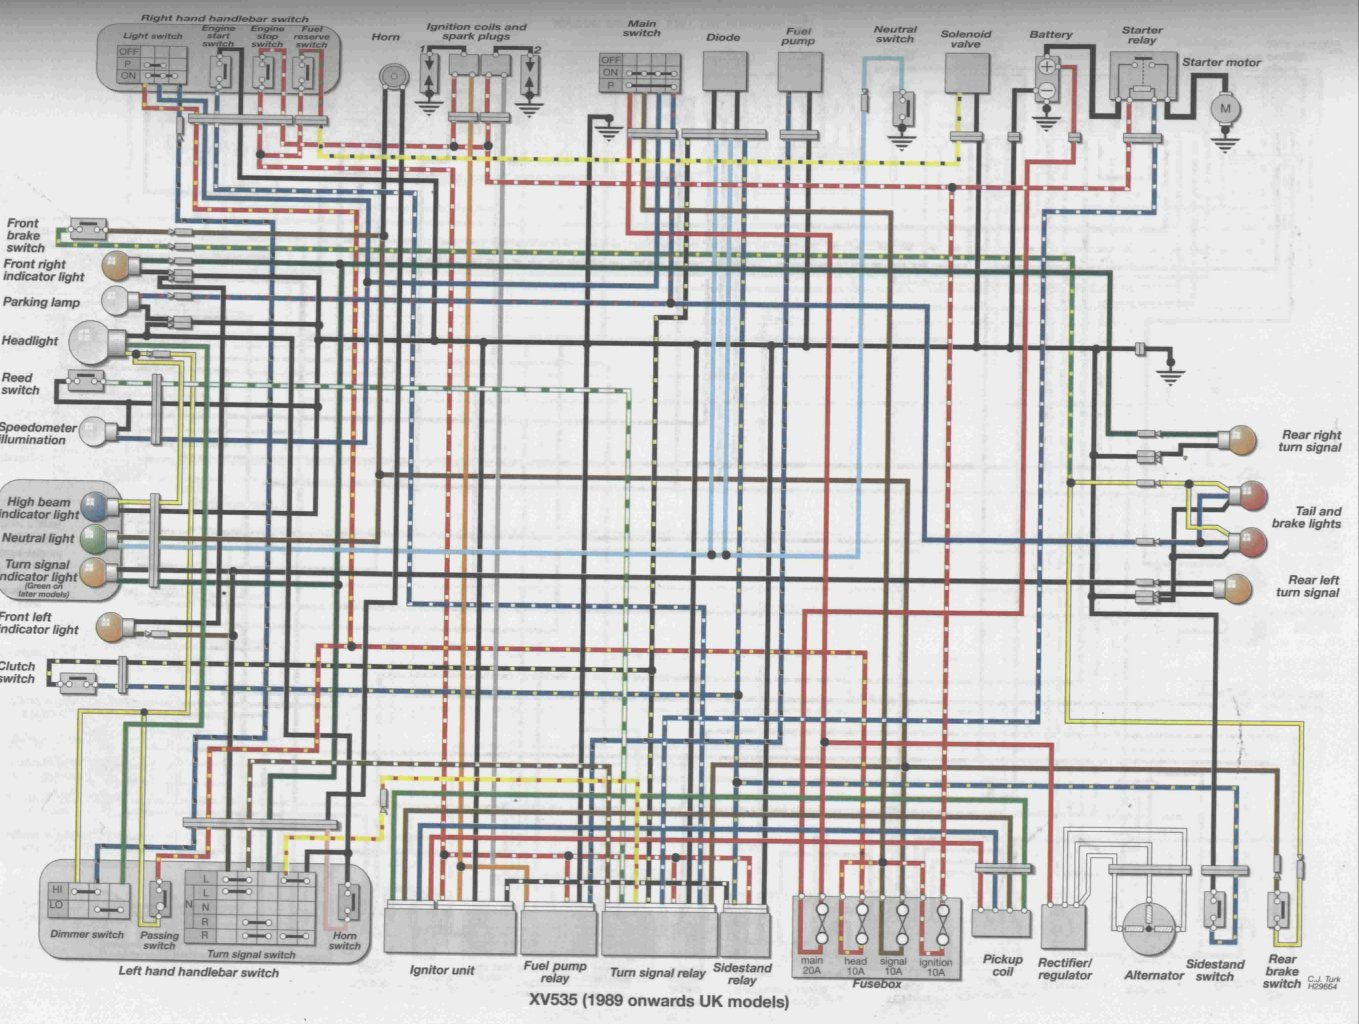 Yamaha V Star 650 Wiring Diagram Tach Schematic Diagrams Motorcycle Xvs650 Trusted 2001 Road Rear Turn Signal Diode Location